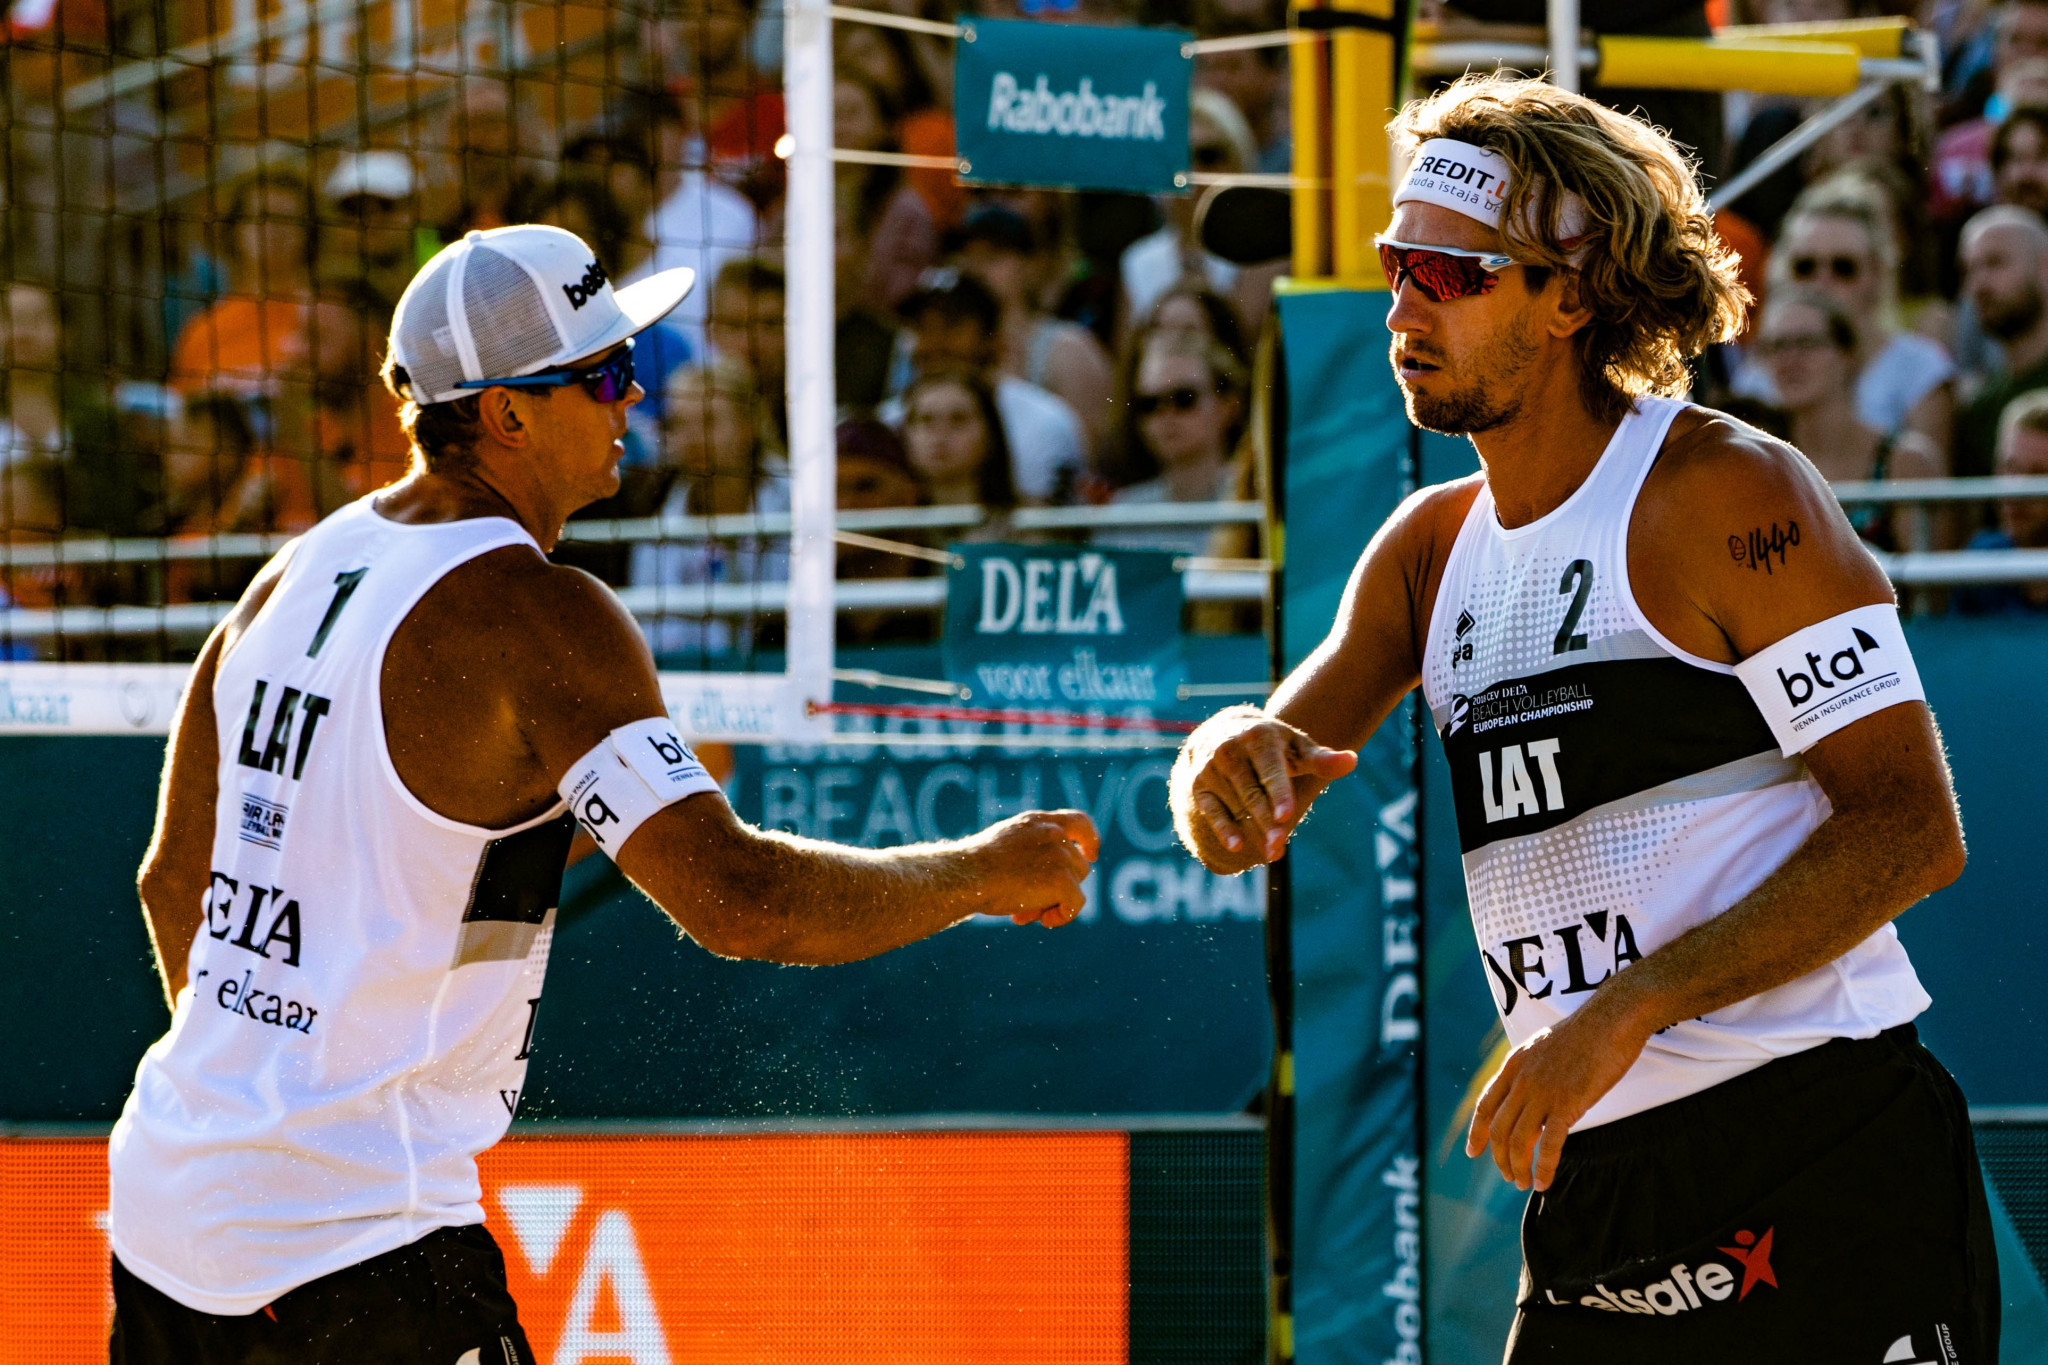 Latvians Samoilovs and Smedins defeated on day of surprises at FIVB Beach World Tour